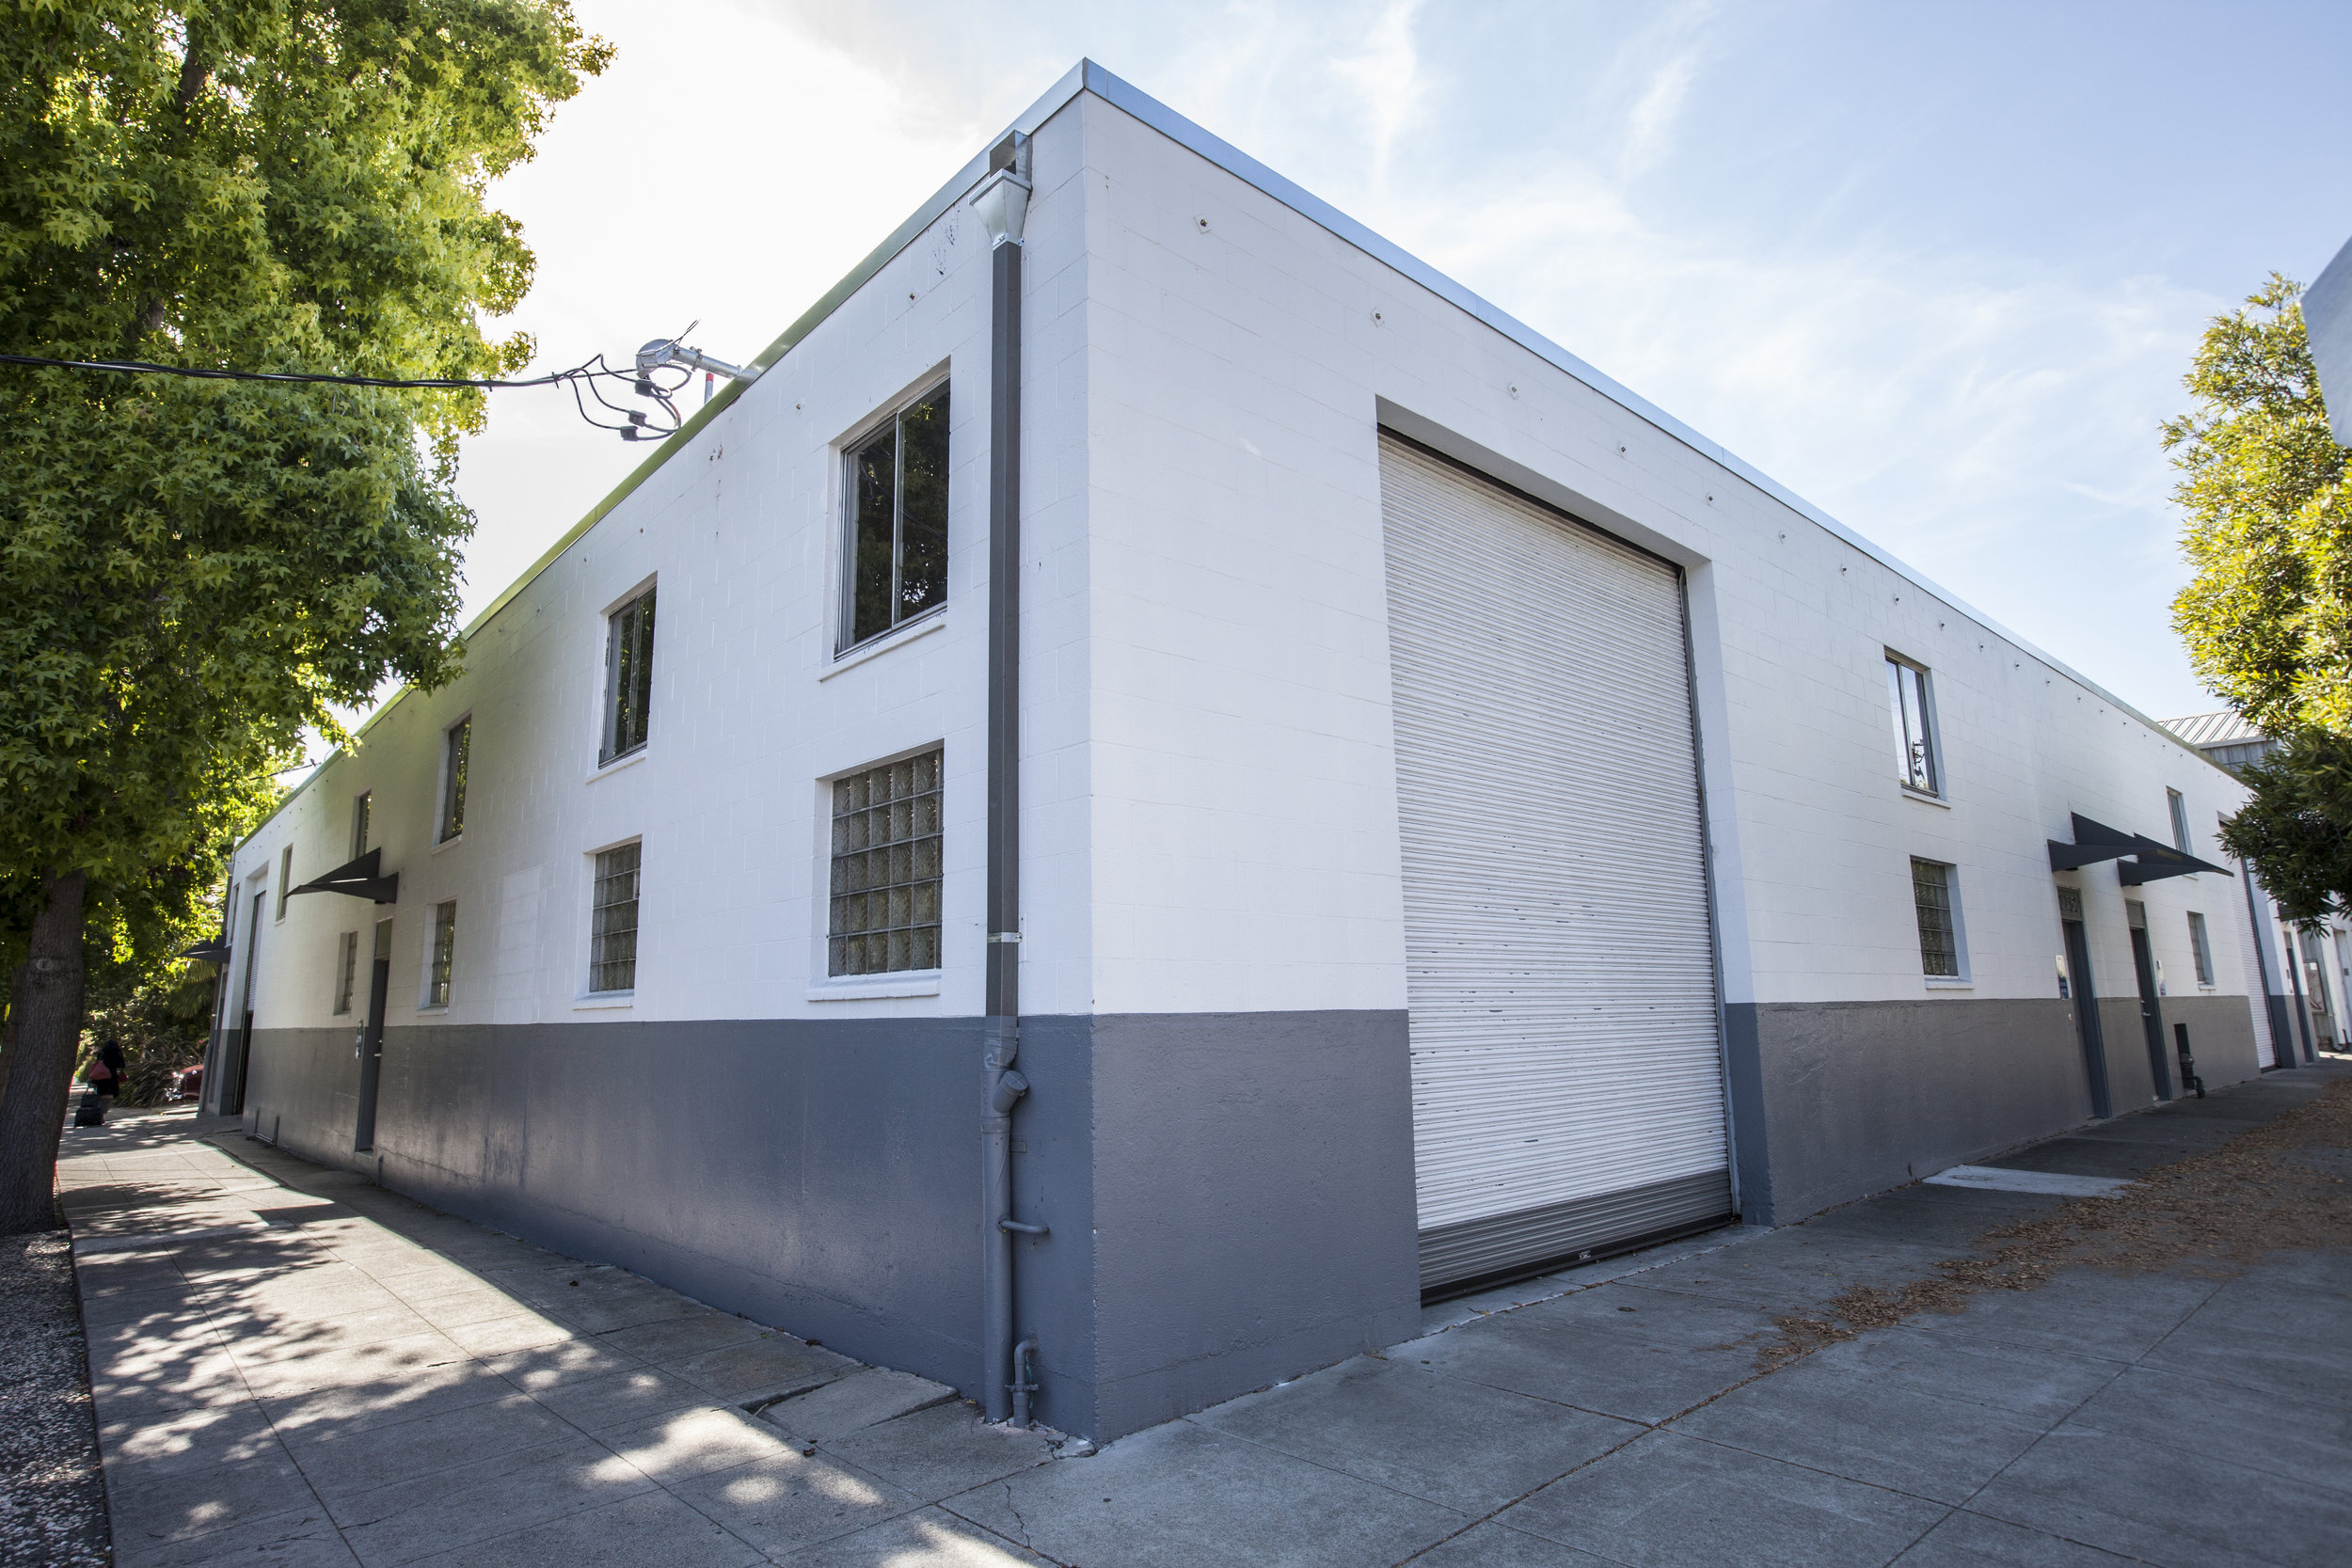 This commercially zoned warehouse on the corner now has a clean and cared for exterior appearance. Being a private facility (not commercial)we wanted to keep a low profile, basic exterior appearance.